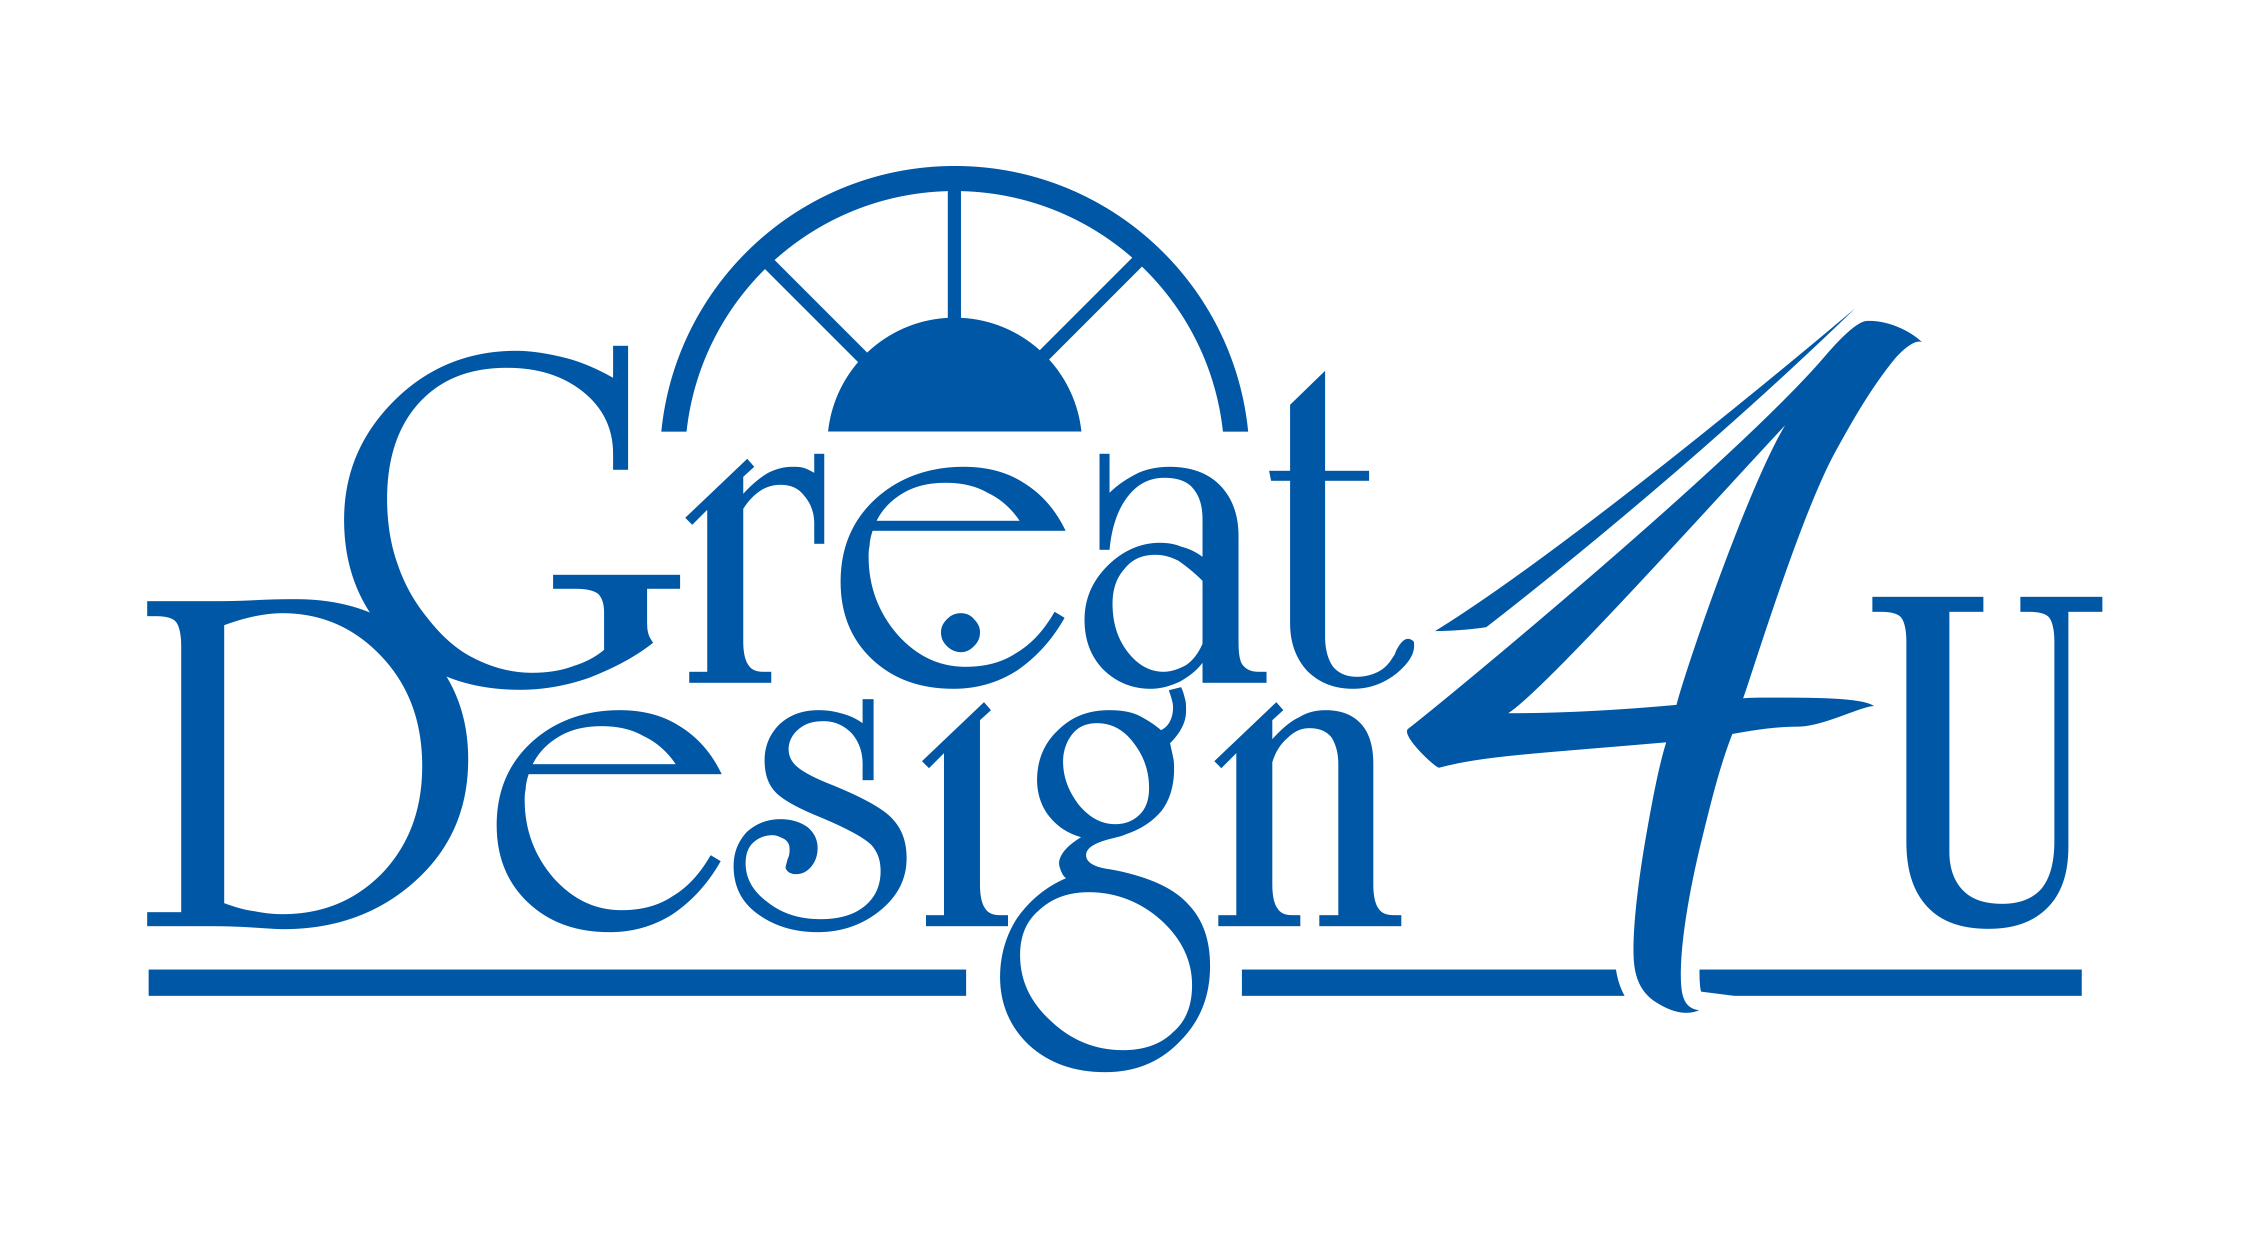 Great Design 4 U